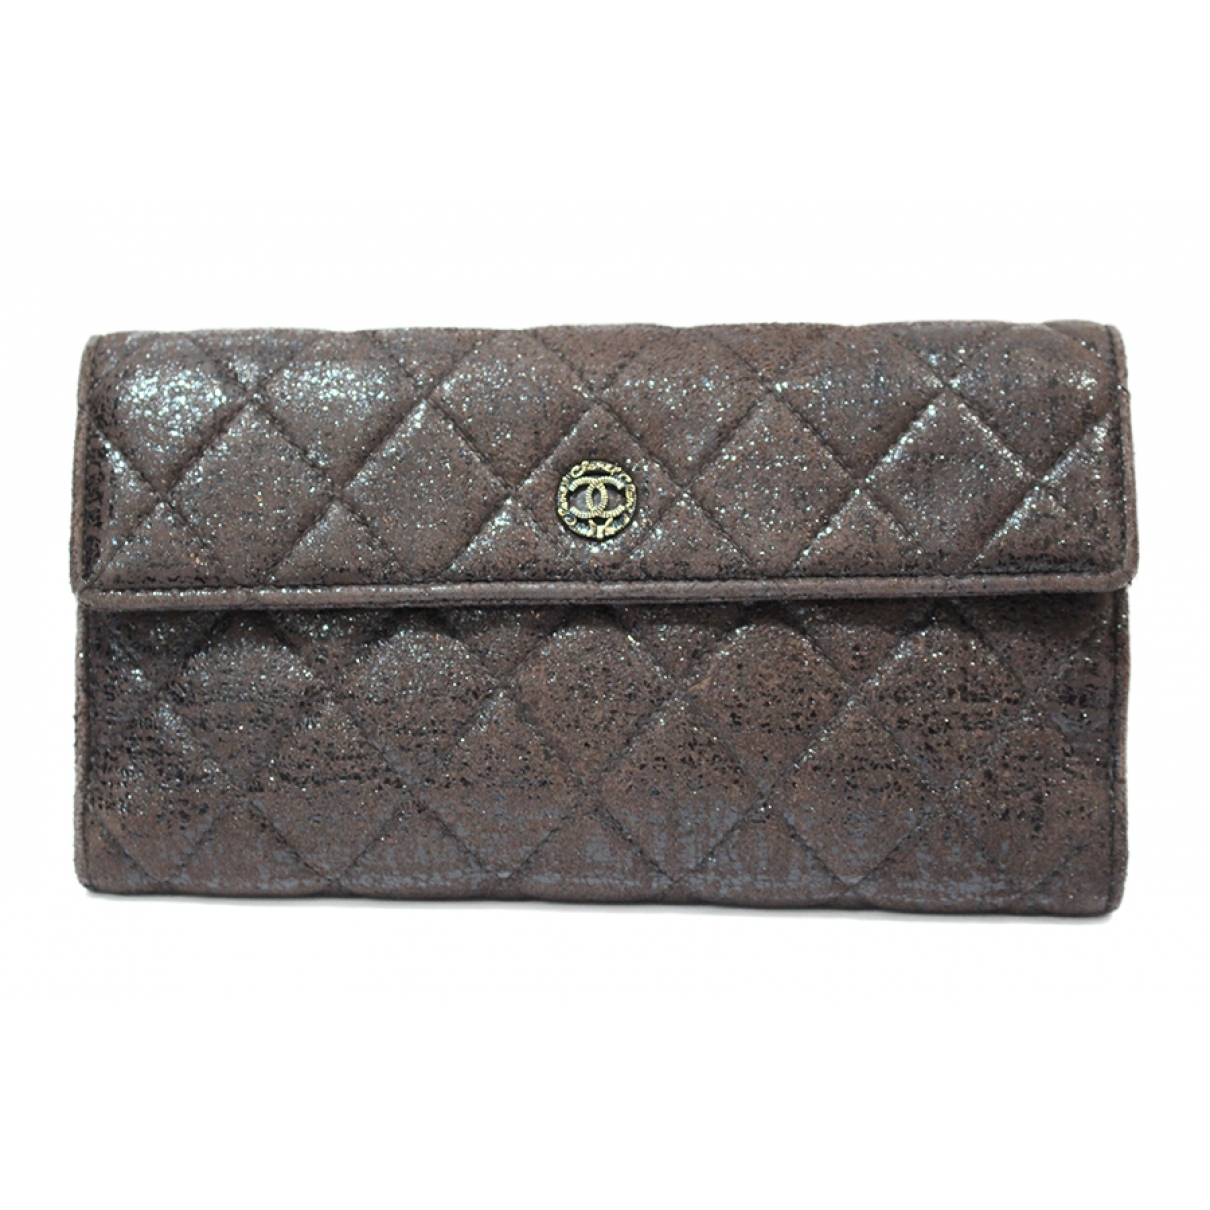 Chanel \N Brown Leather wallet for Women \N